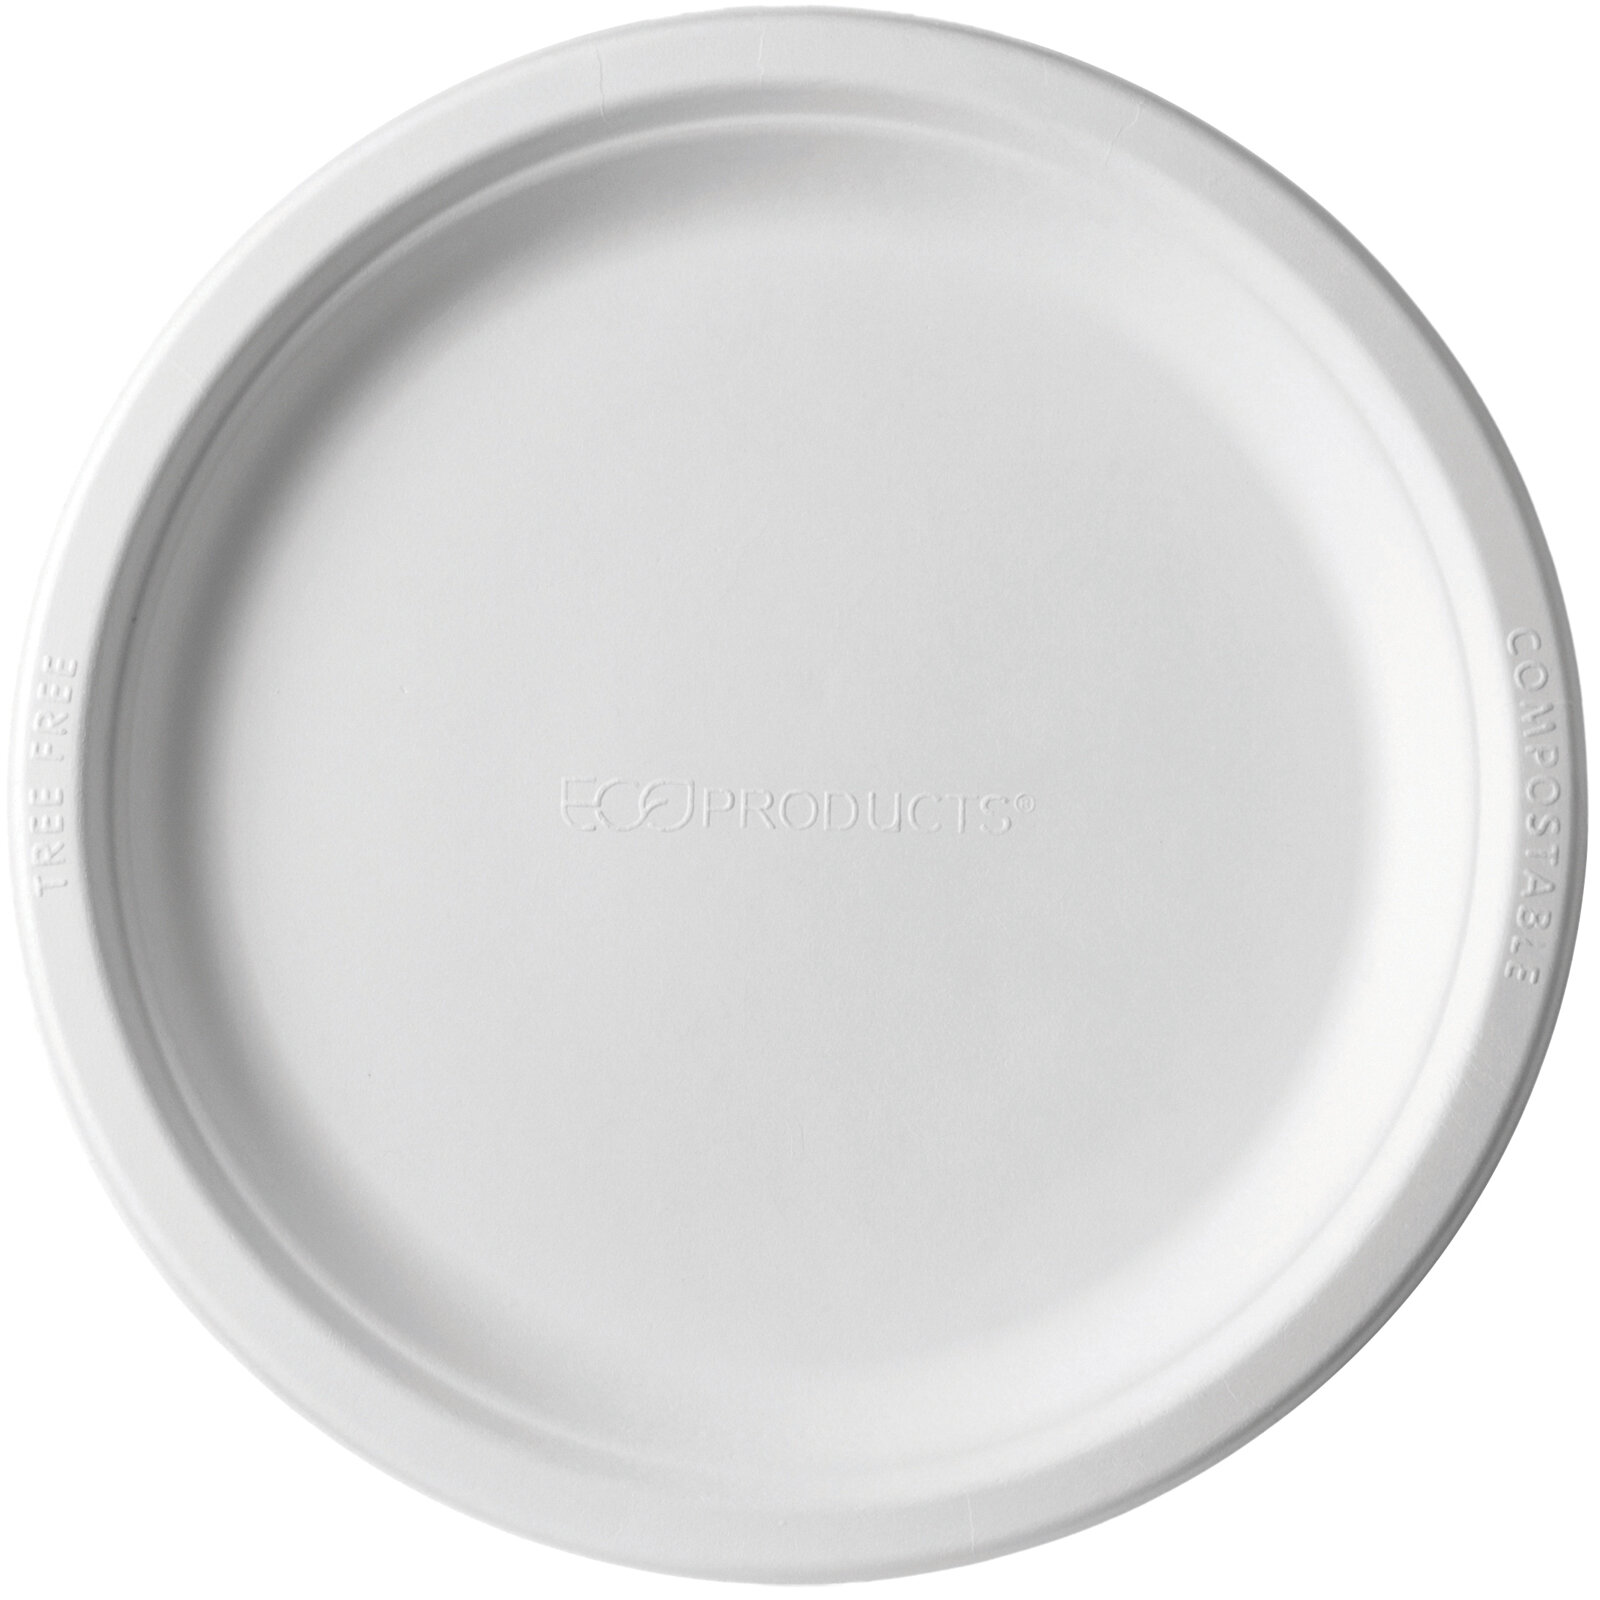 Biodregrabable Plate 230mm (Box Of 500)